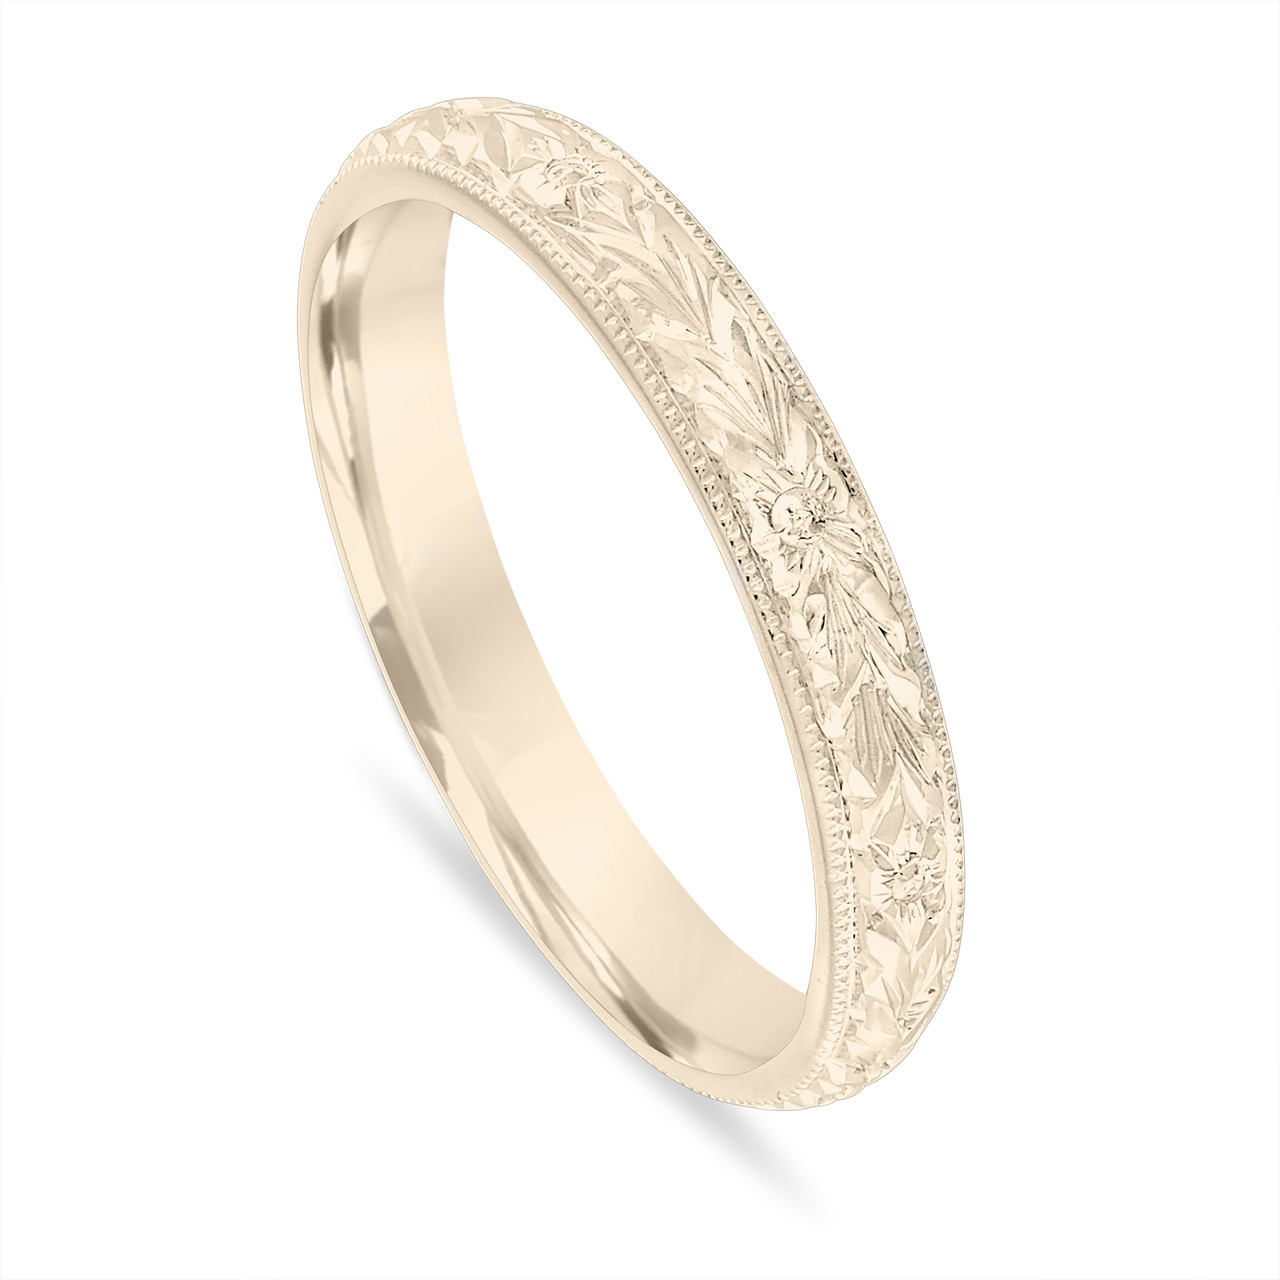 Gold Wedding Band, Hand Engraved Wedding Ring, Vintage